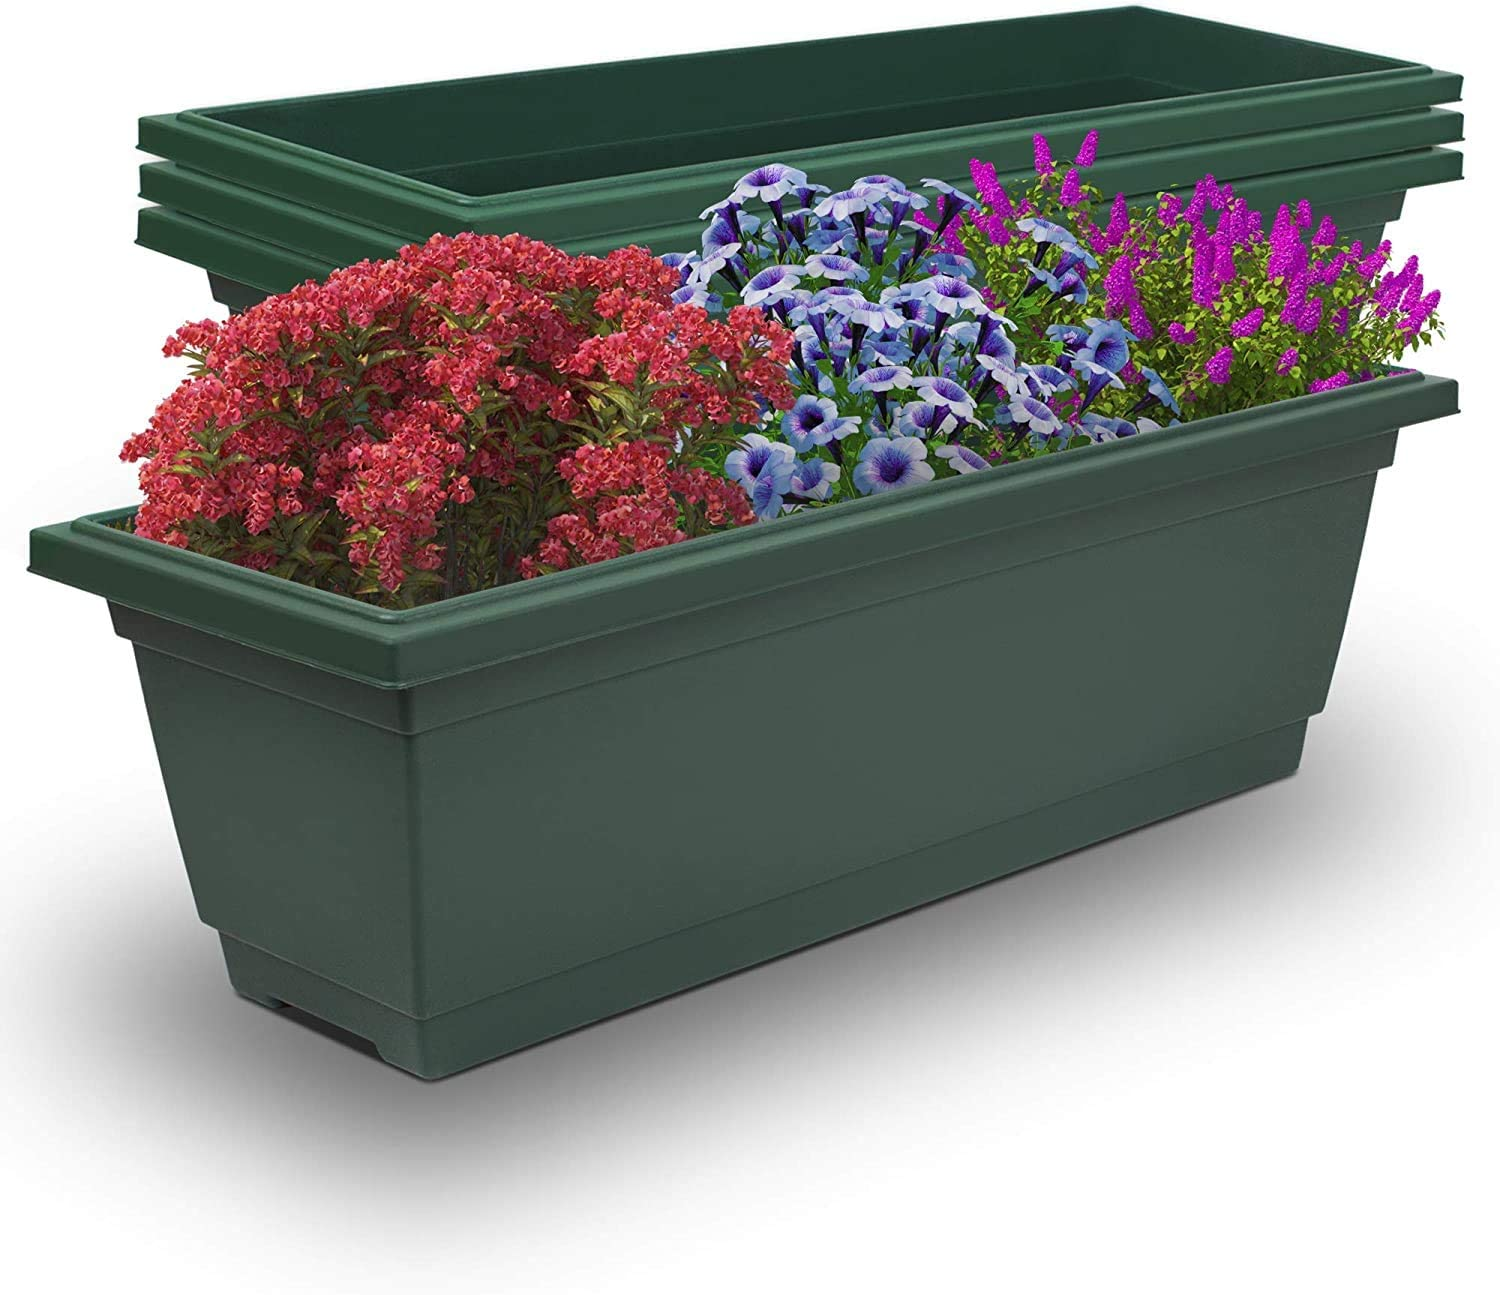 Outland Living 4 Packs 26.5 inches Outdoor and Indoor Rectangle Plastic Planter Box Perfect for Herbs Succulents Vegetables and Flower Gardening (Large 4-Pack, Forest Green)